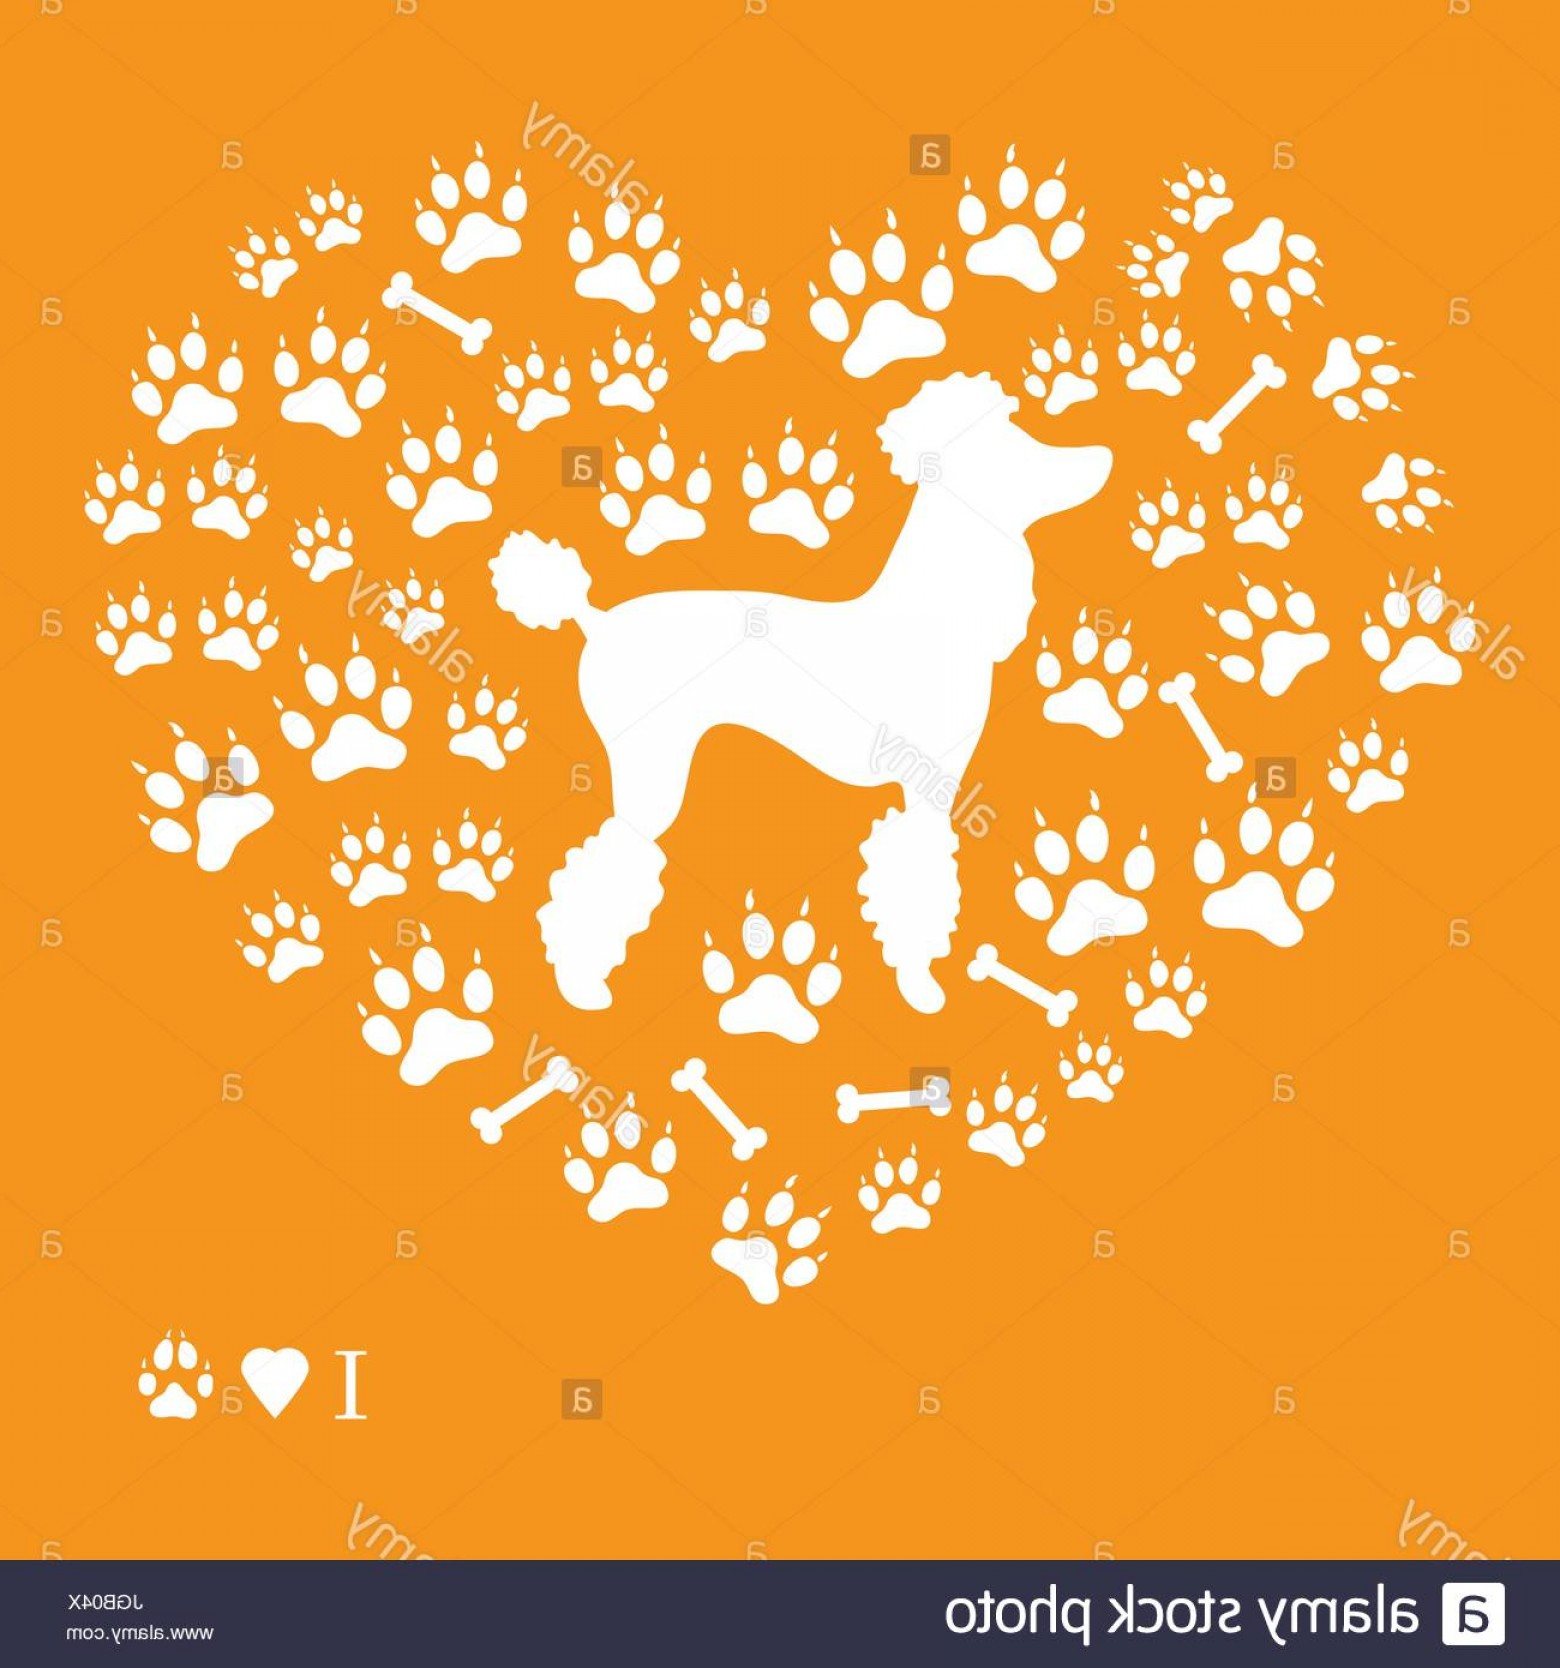 Bone Shaped Dog Tags Vector Art: Stock Photo Nice Picture Of Poodle Silhouette On A Background Of Dog Tracks And